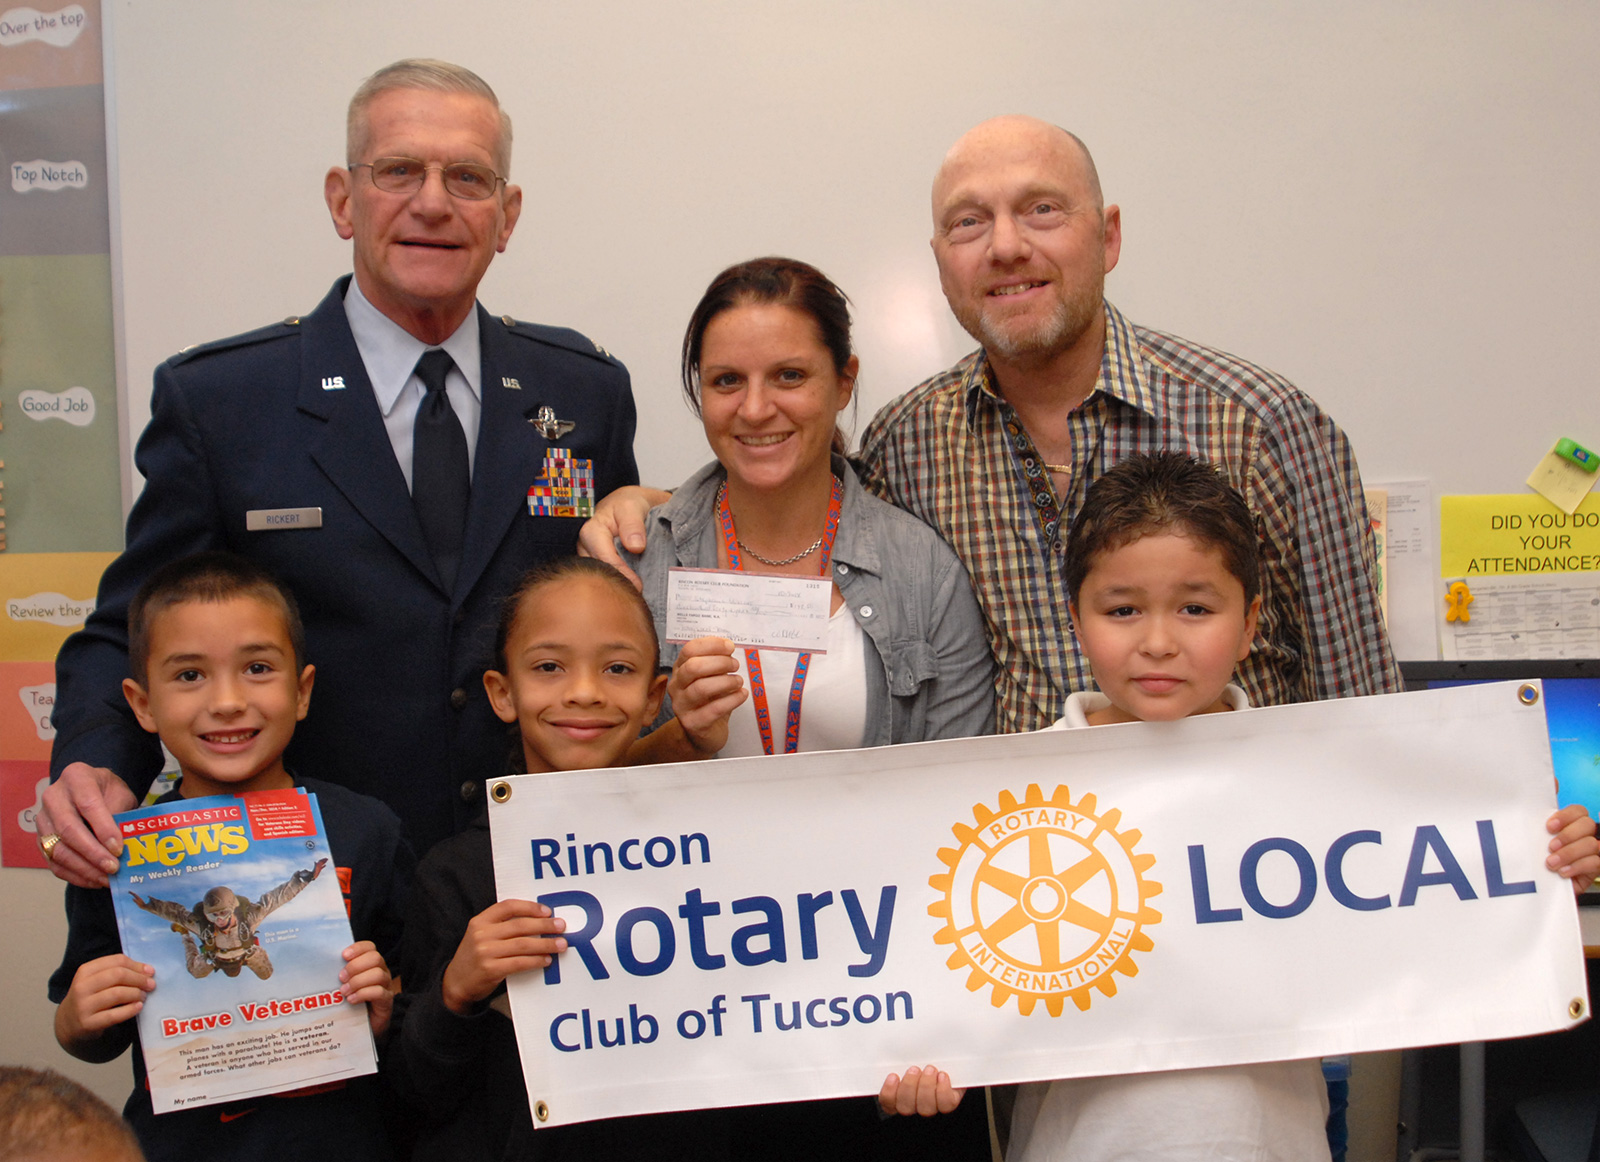 The Rincon Rotary Club of Tucson gave a Bloom Elementary School second grade class a subscription to Scholastic News.